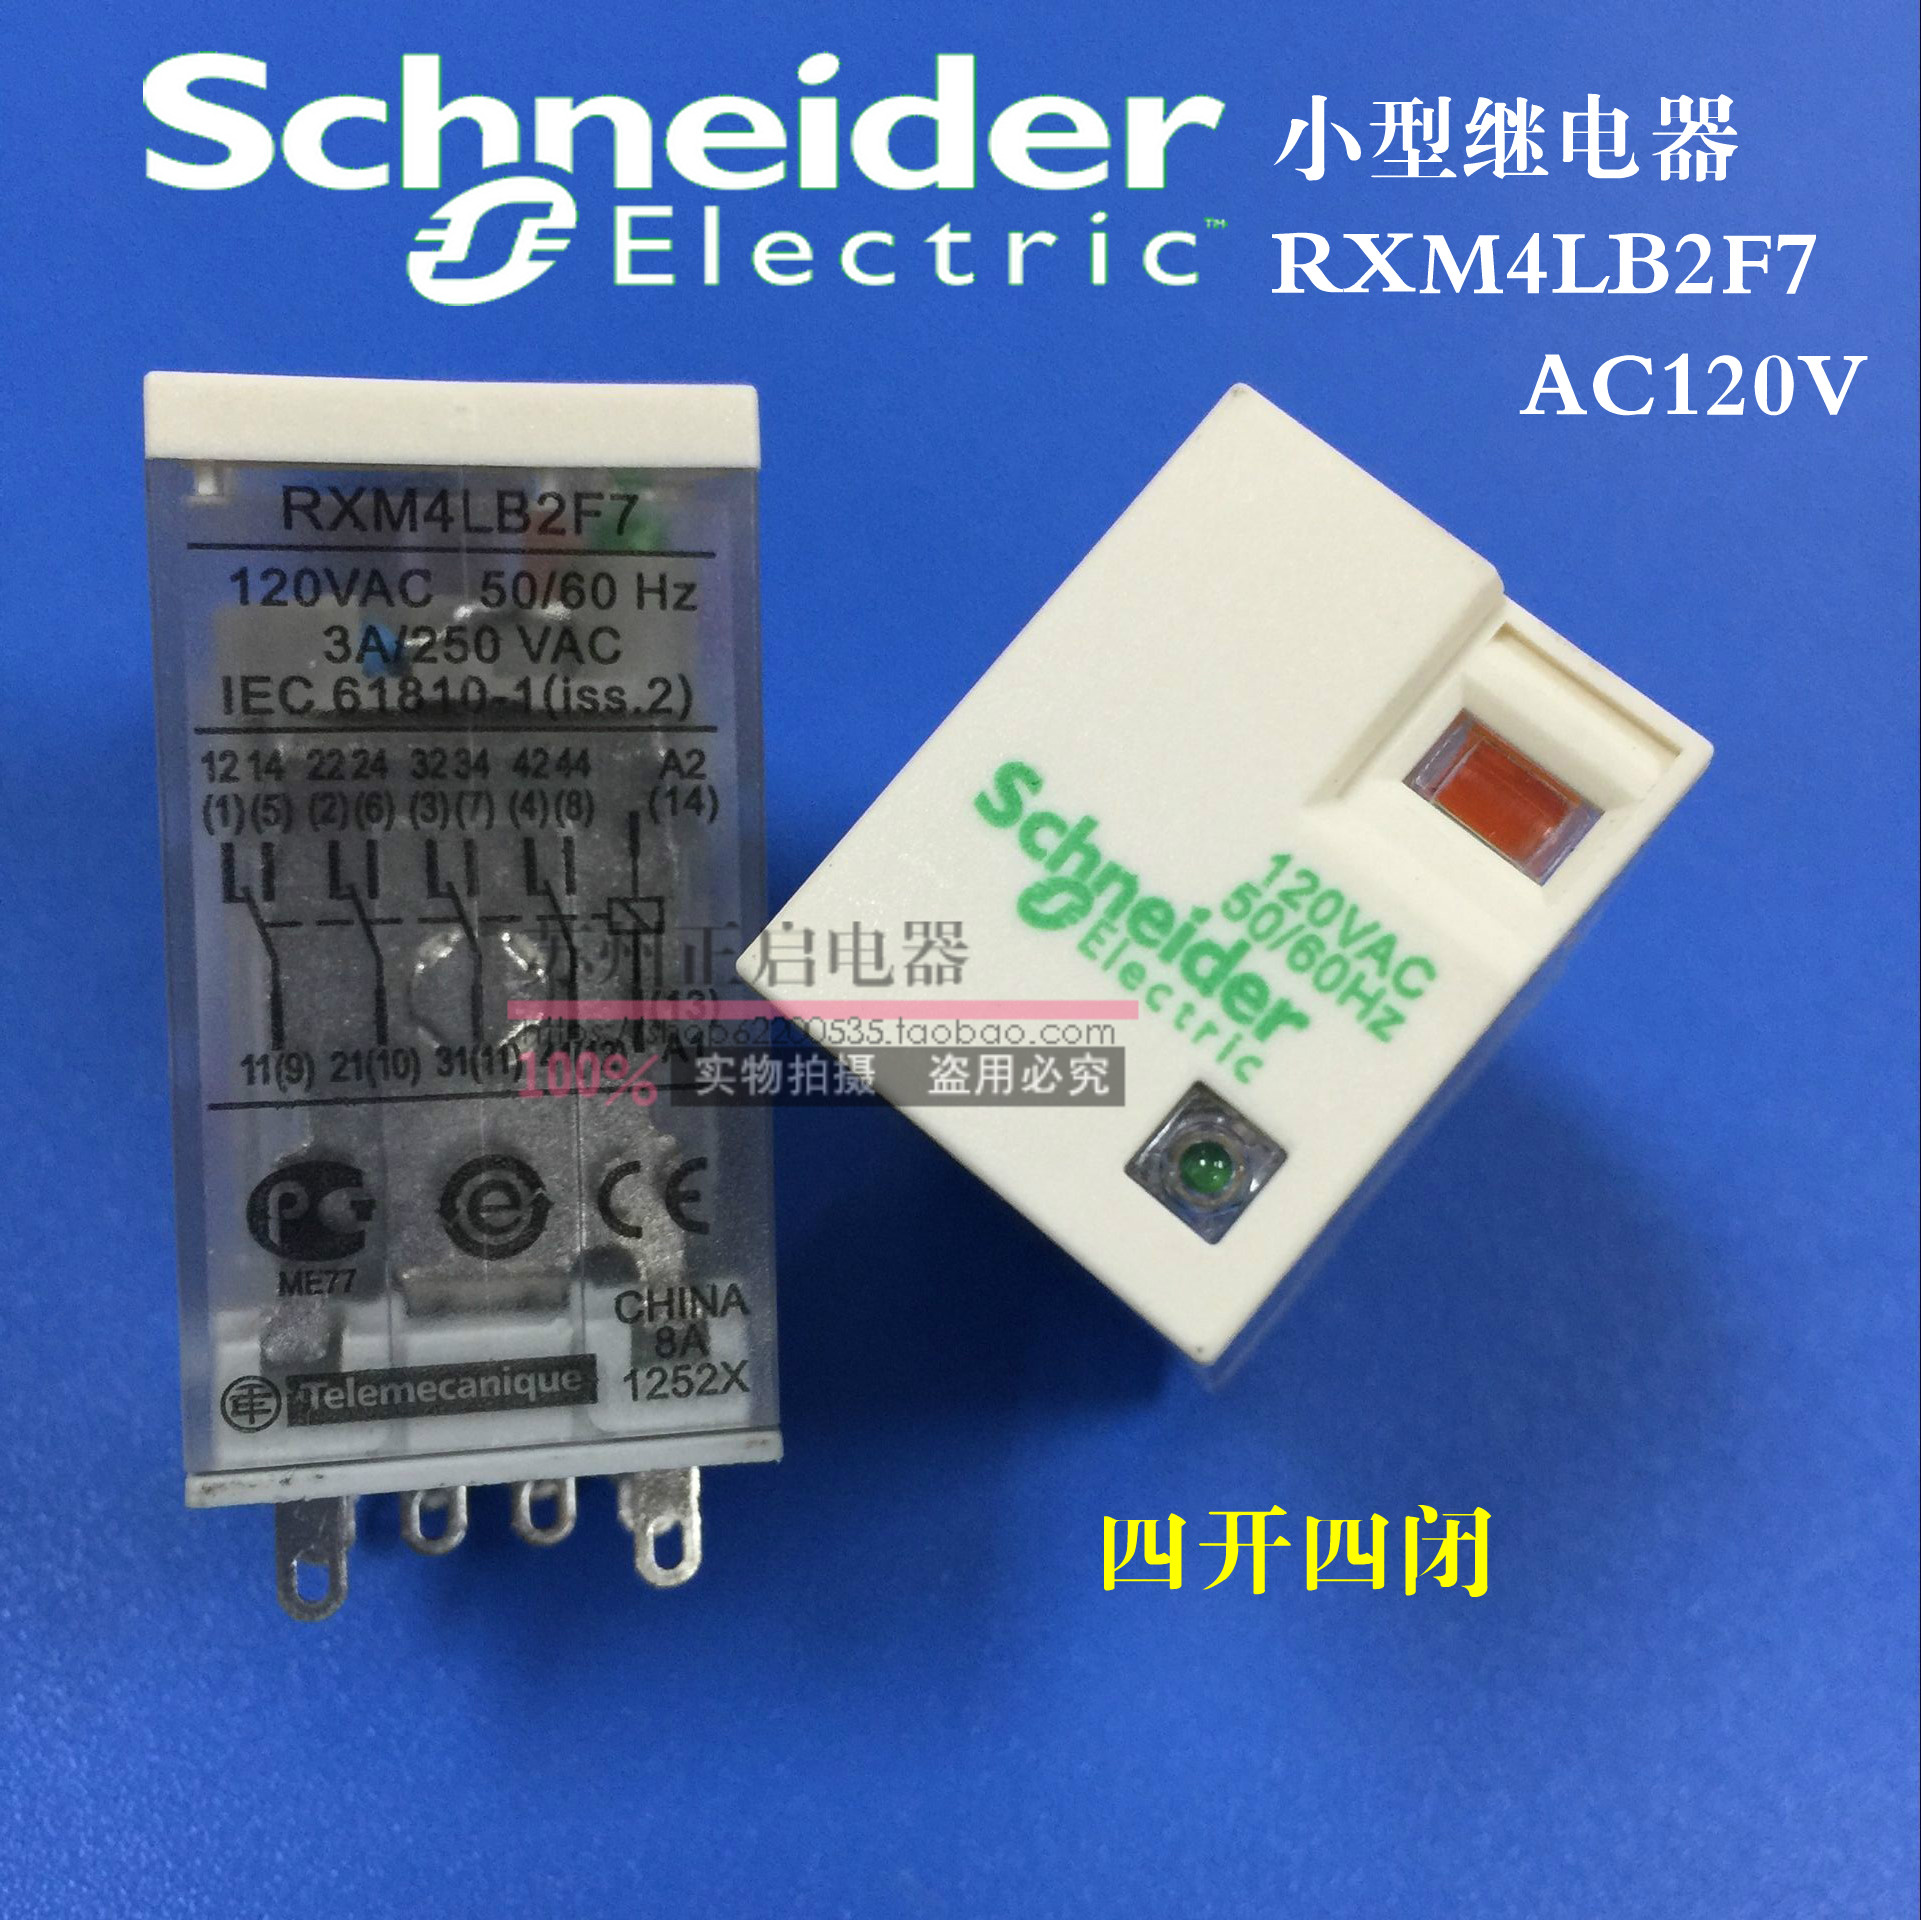 Usd 600 Schneider Relay Rxm4lb2f7 Ac110v Wholesale From China New Electric Zelior Solidstate Relays